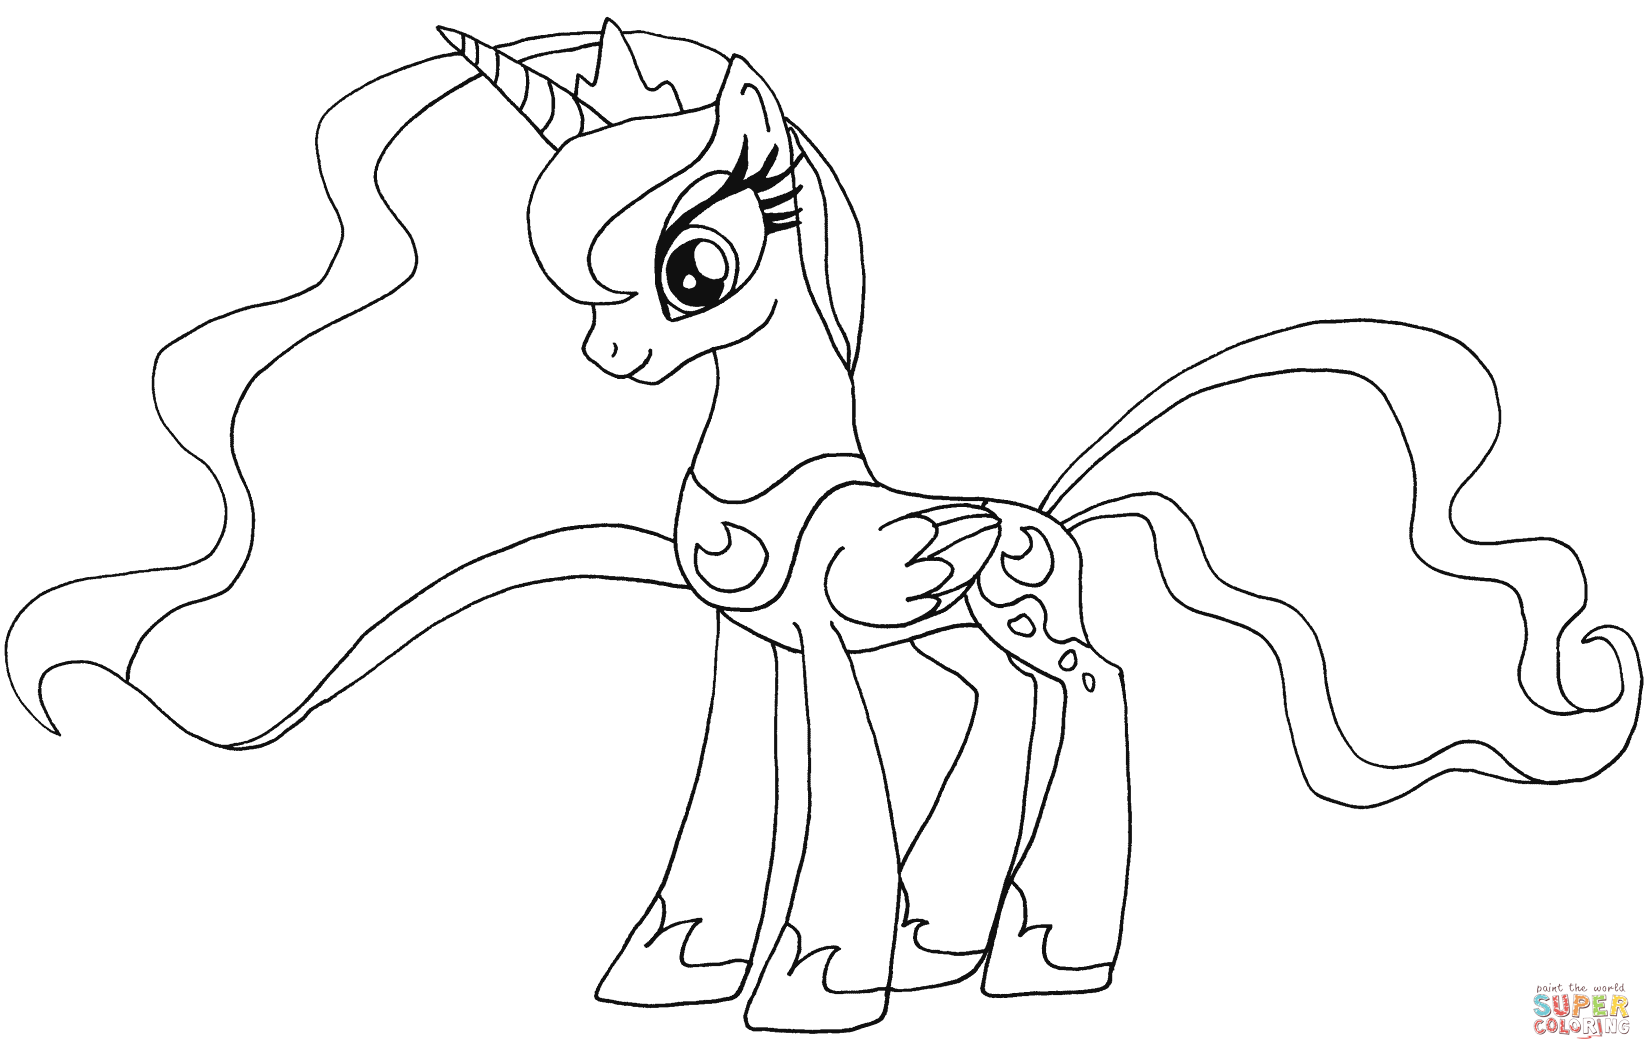 Hard My Little Pony Coloring Pages : My little pony princess sunset shimmer coloring page